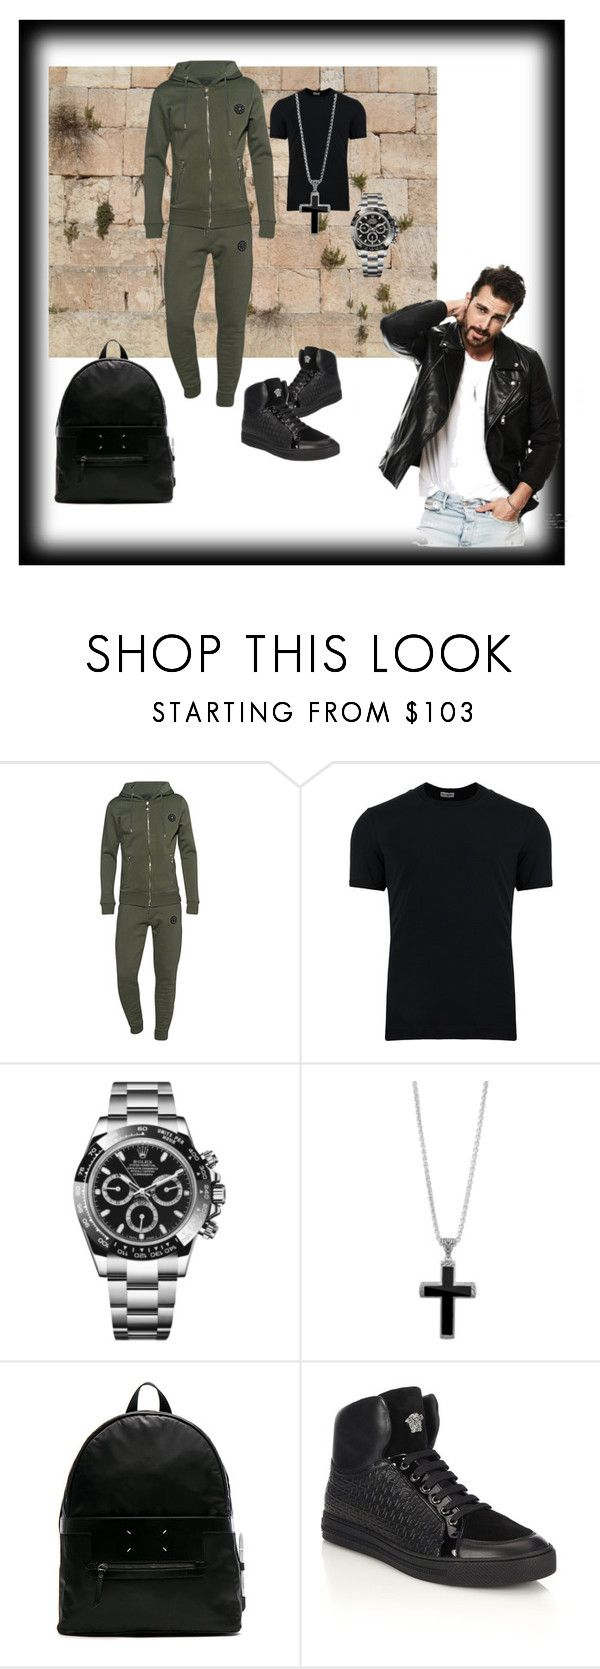 """""""First men's look"""" by swannyreign ❤ liked on Polyvore featuring Dolce&Gabbana, Rolex, John Hardy, Maison Margiela, Versace, men's fashion and menswear"""